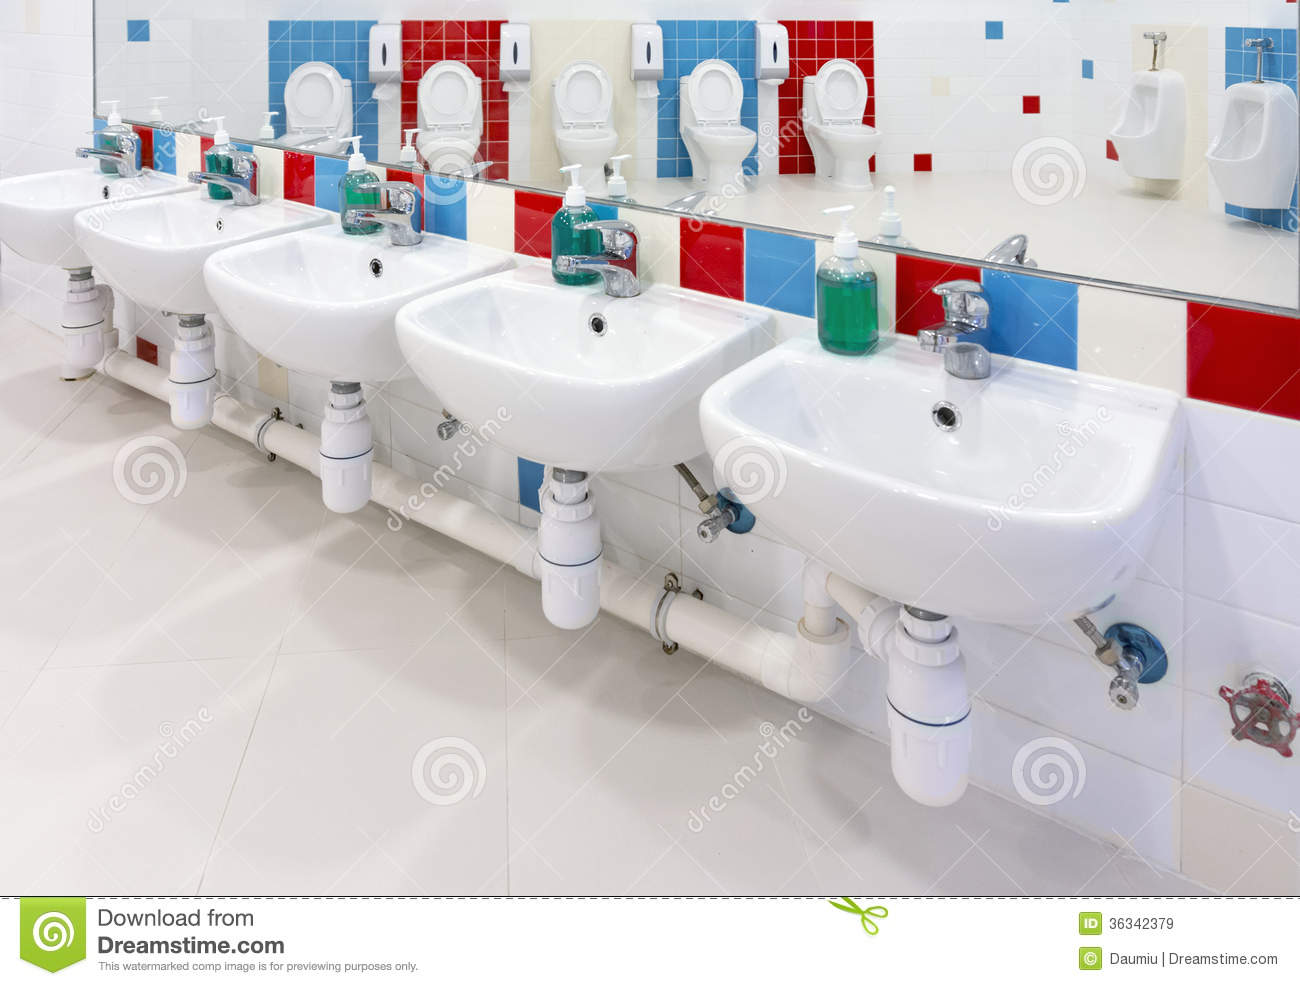 Restroom Furniture Preschool Washroom Royalty Free Stock Images - Image: 36342379